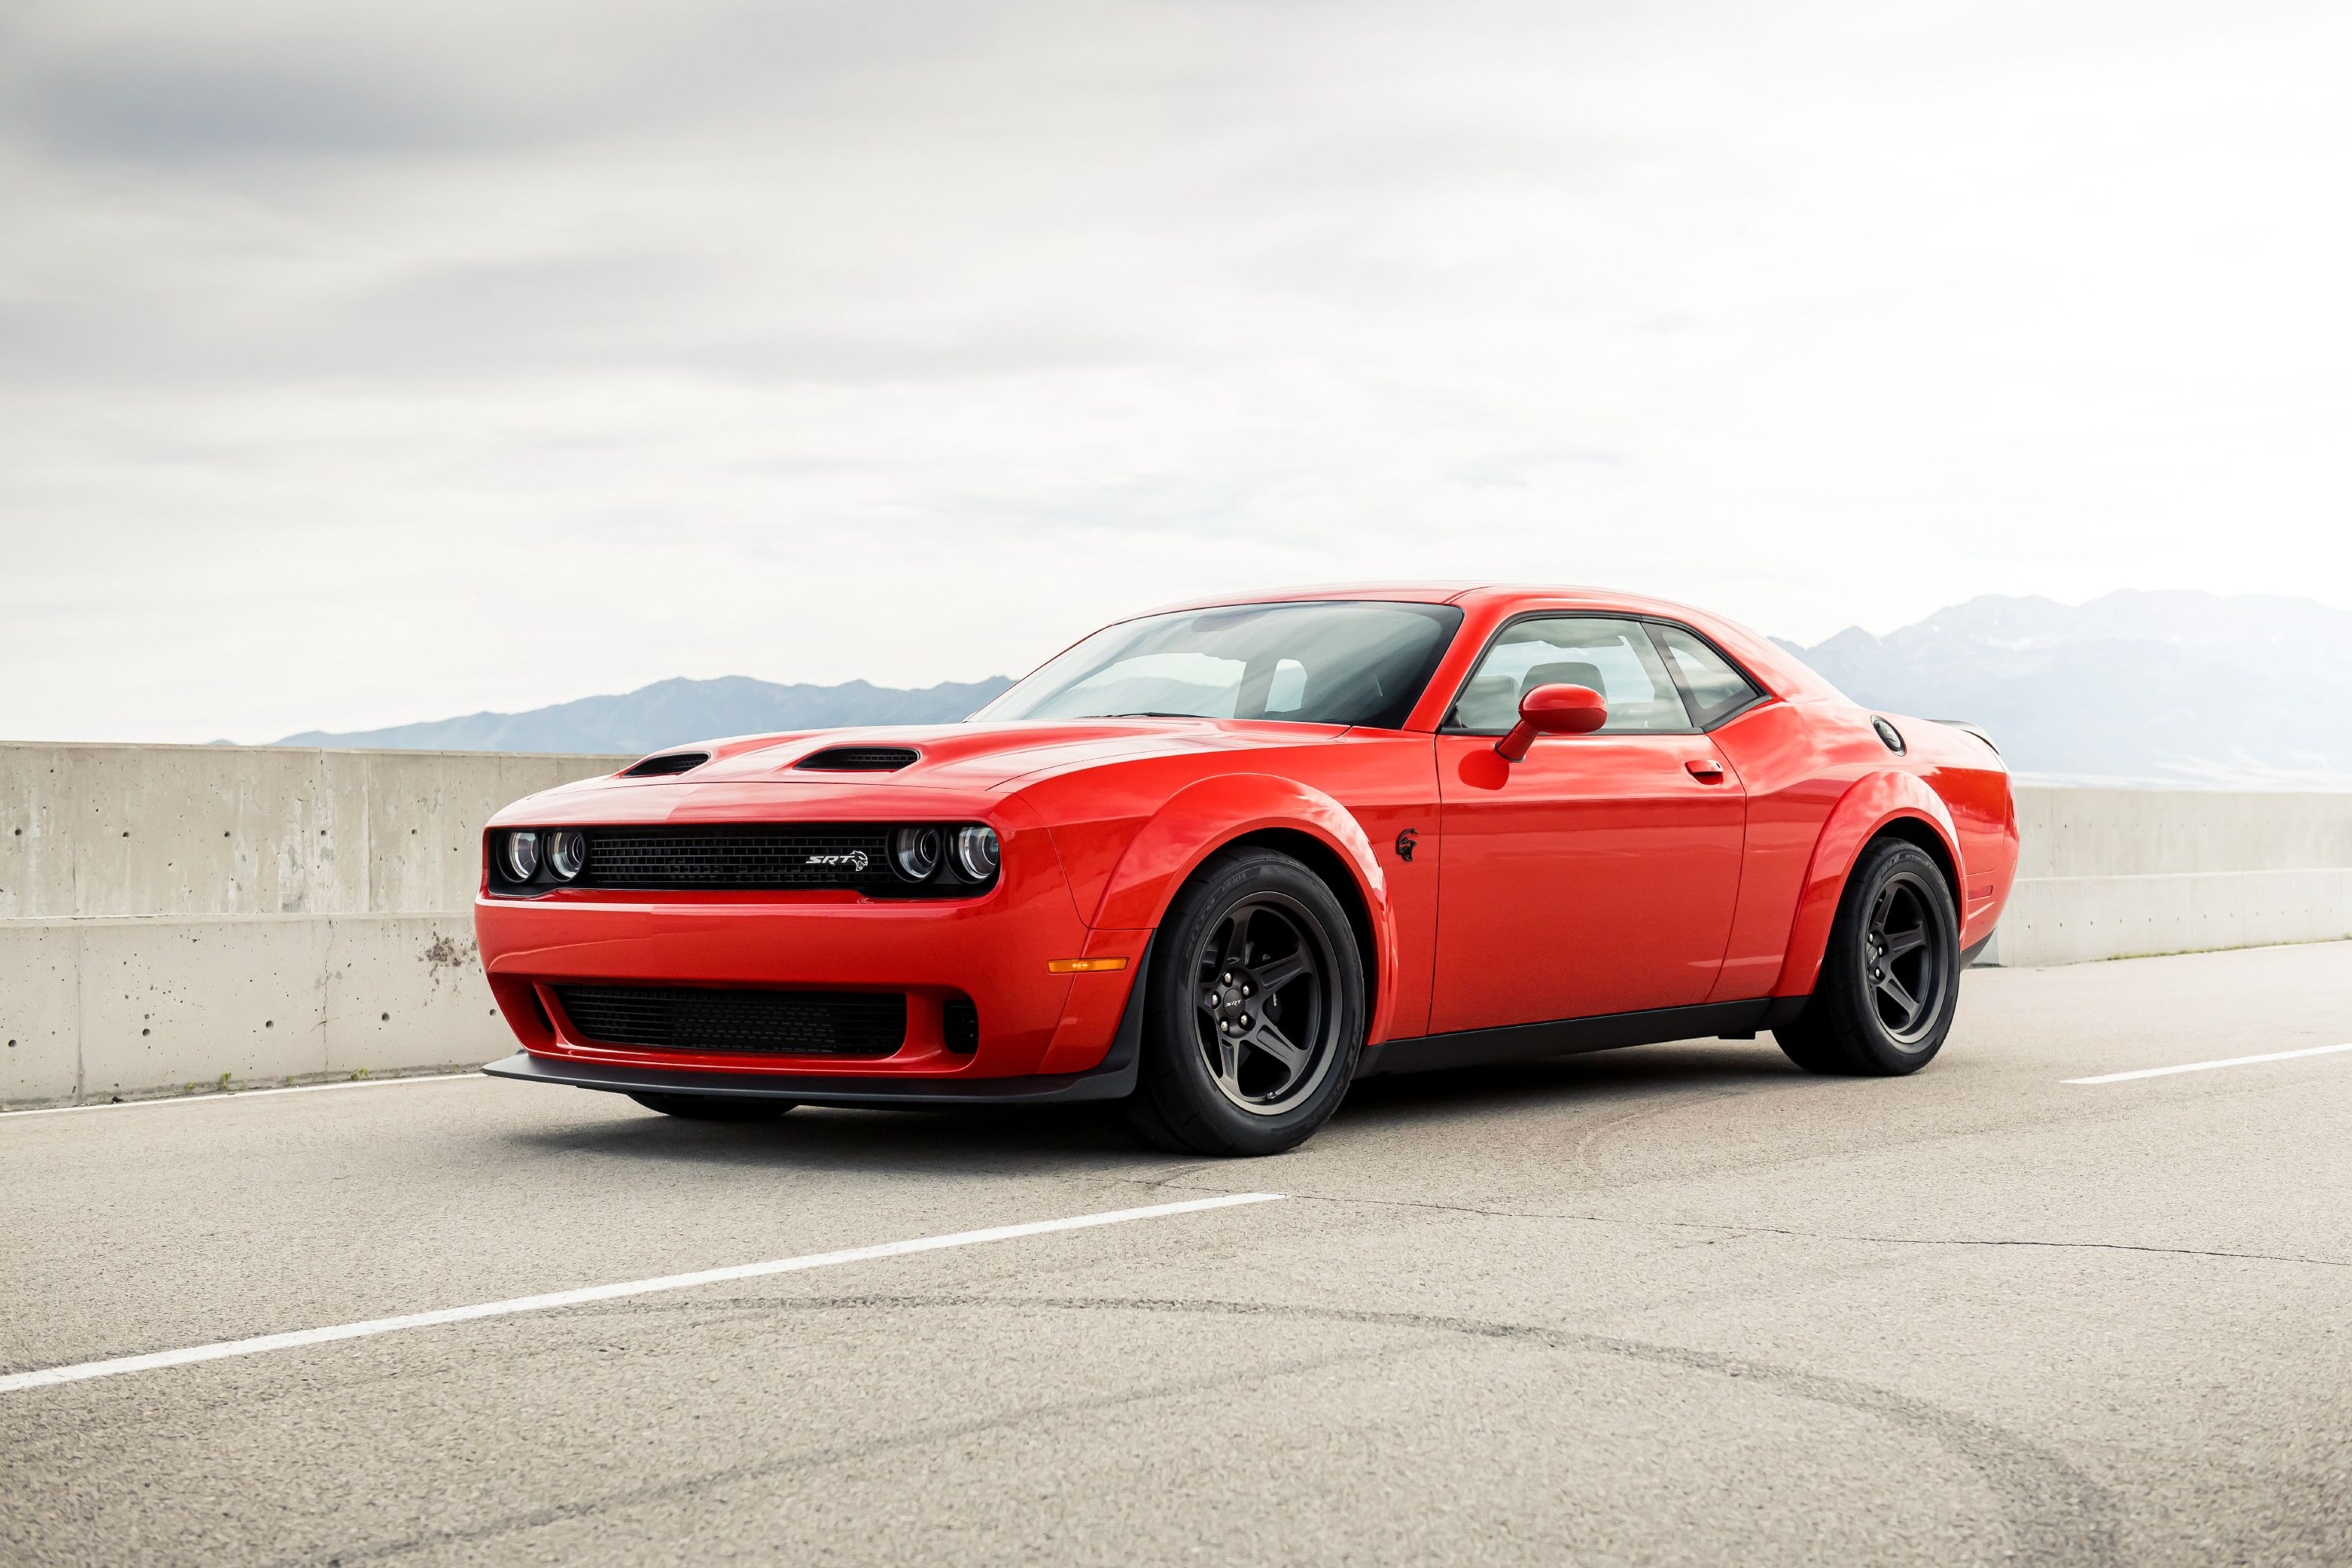 2021 Dodge Challenger Srt Hellcat Review Pricing And Specs